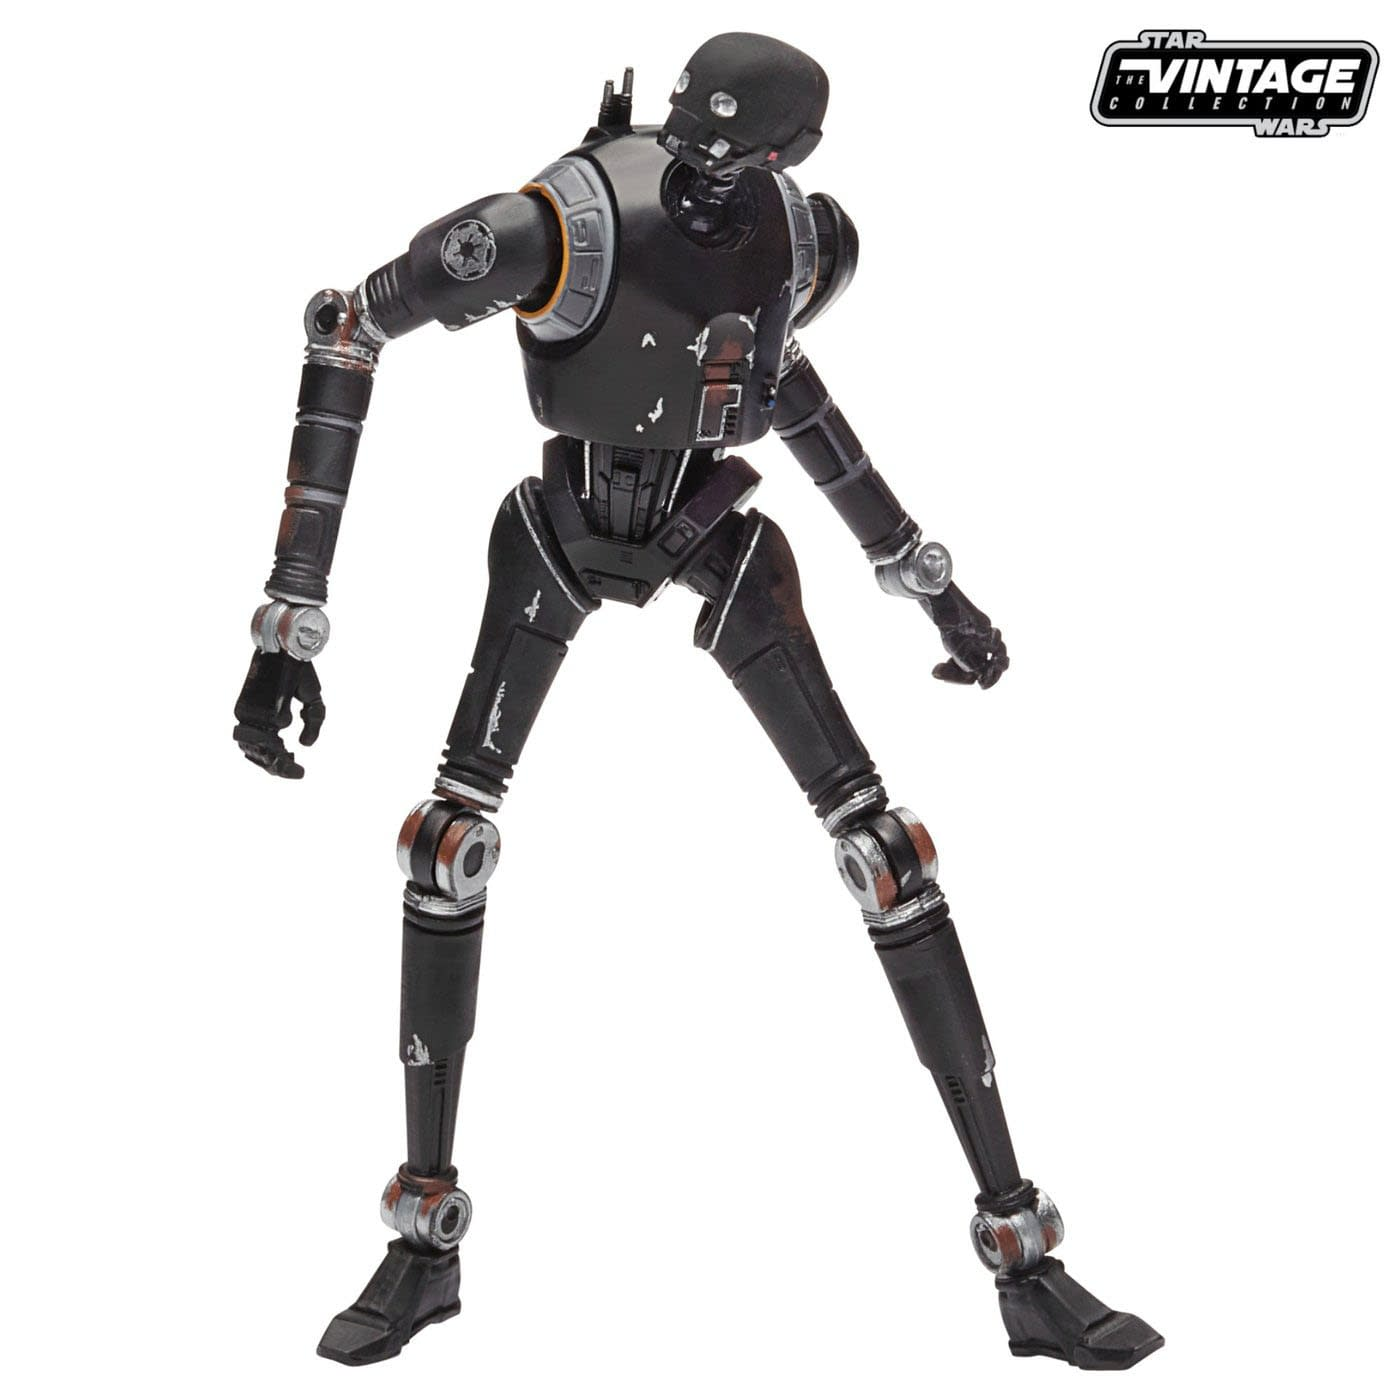 Star-Wars-The-Vintage-Collection-K-2SO-004